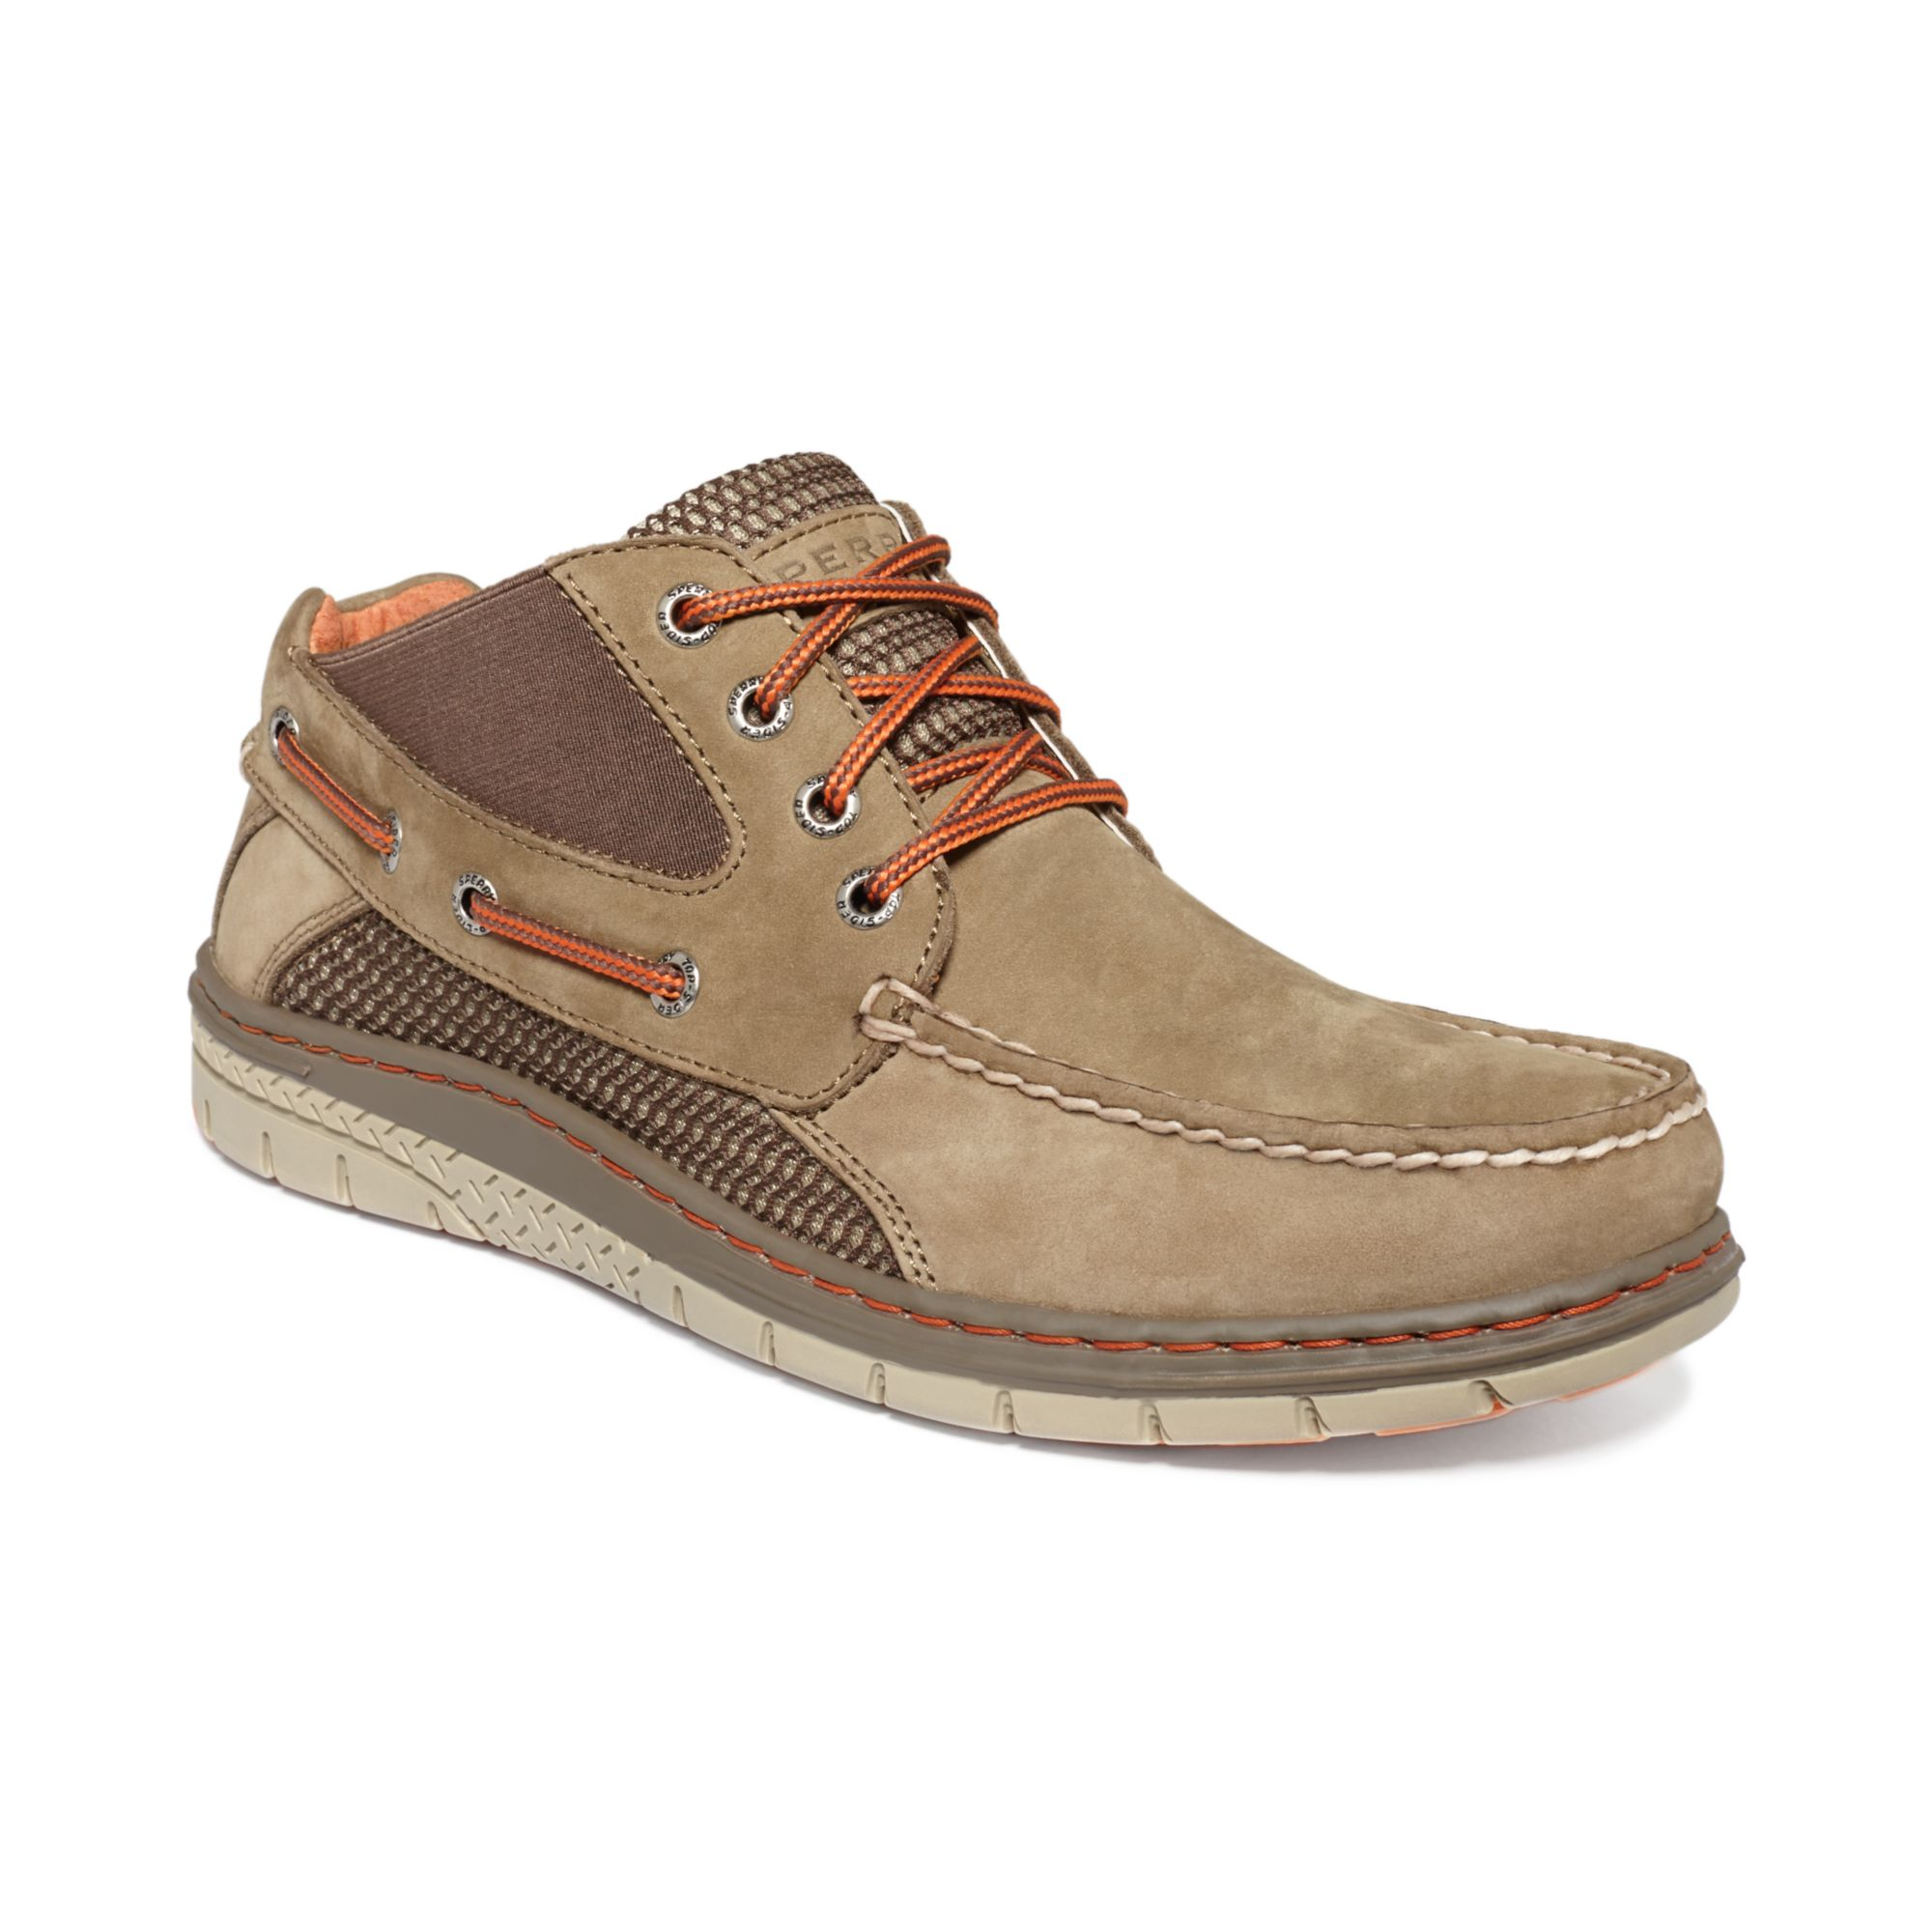 Wonderful Some Top Deals, With Prices After Coupon, Include The Sperry Womens Koifish Stripe Boat Shoes For $5249 Low By $15, And The Sperry Mens Clipper Chukka Boots For $5599 Low By $34 Amazing Barga